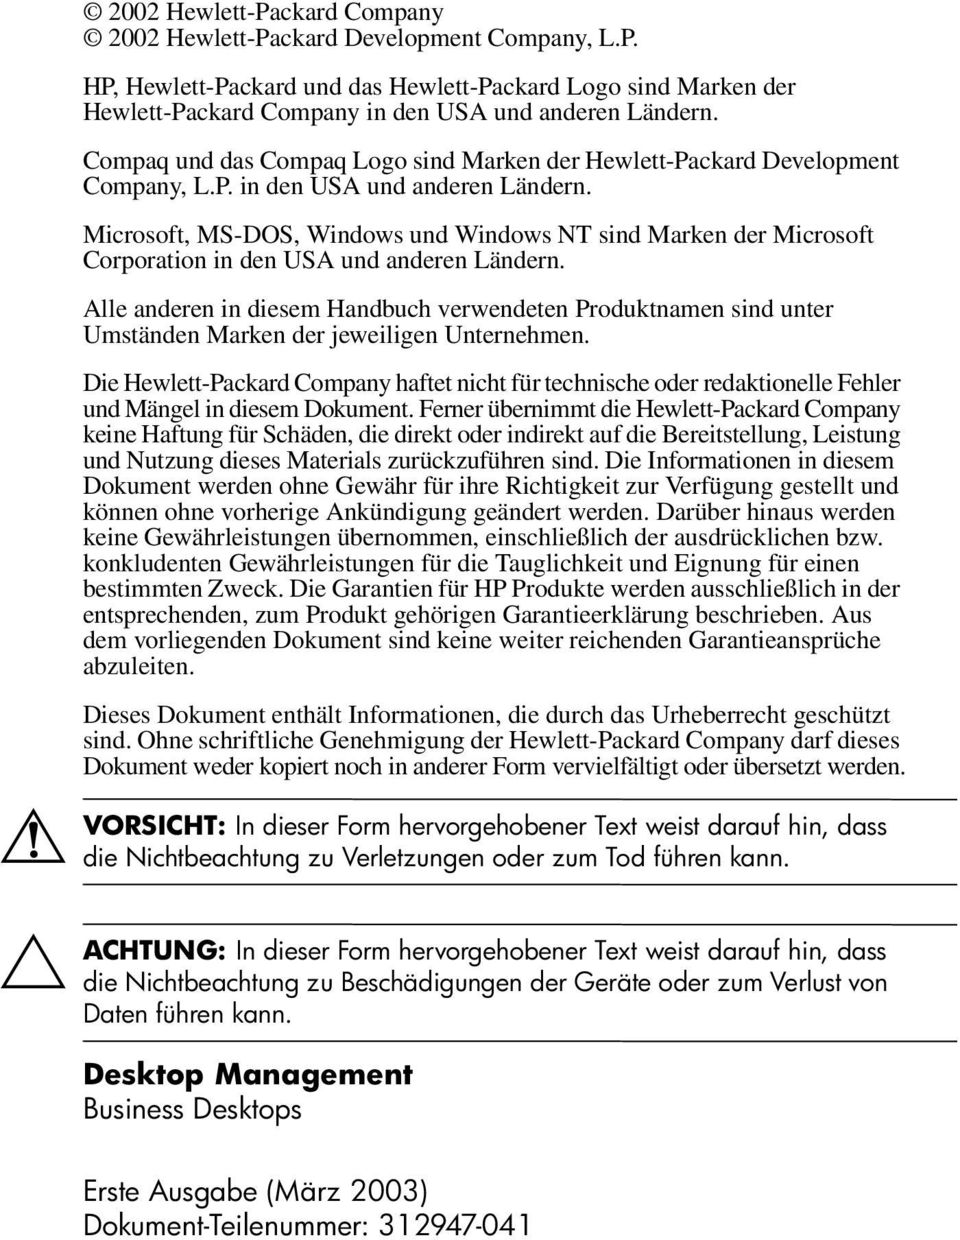 Microsoft, MS-DOS, Windows und Windows NT sind Marken der Microsoft Corporation in den USA und anderen Ländern.